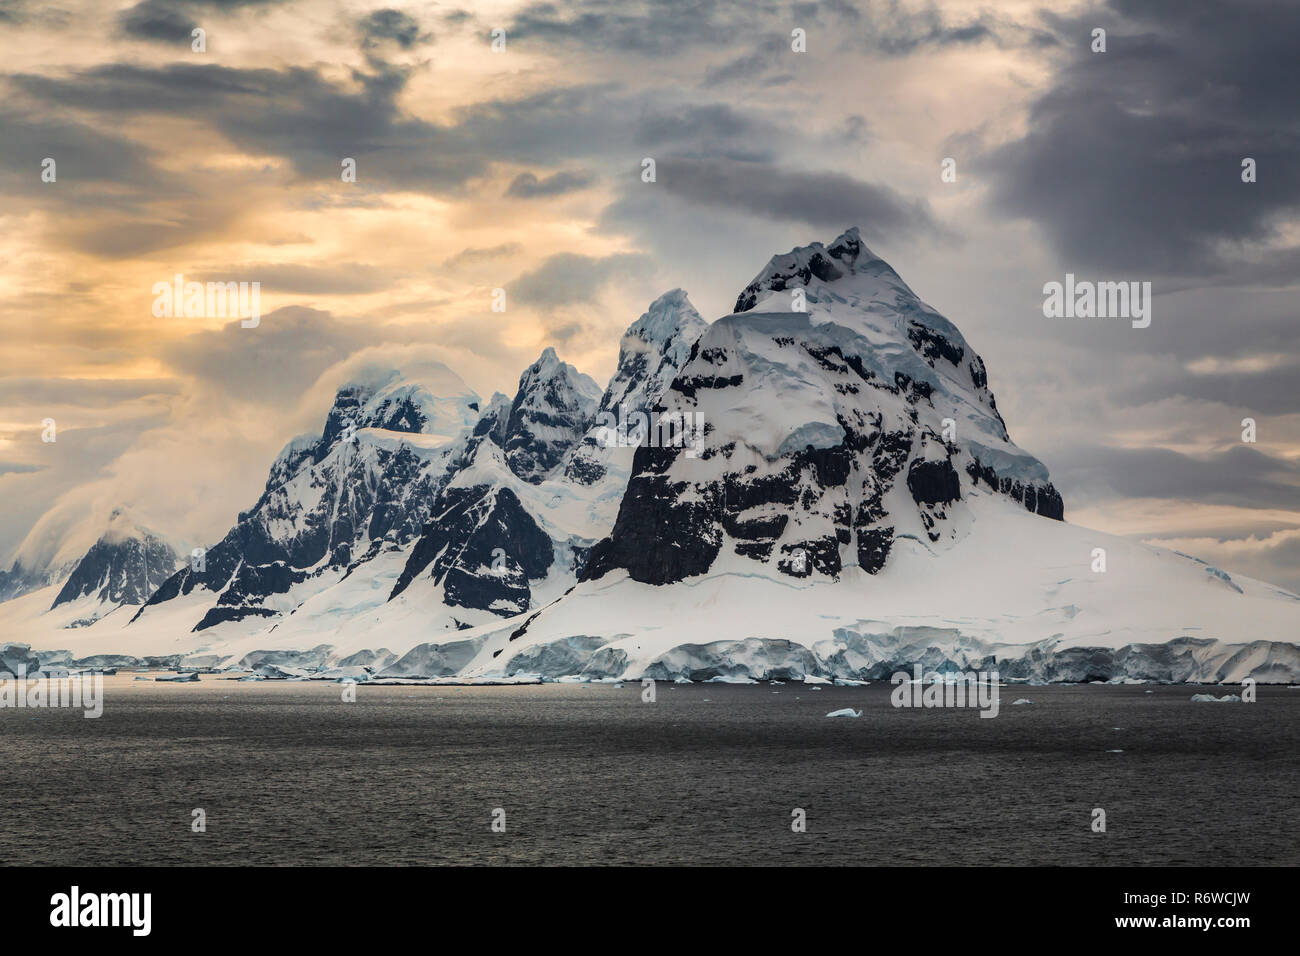 Antarctica ice bergs in the Antarctic Peninsula. - Stock Image